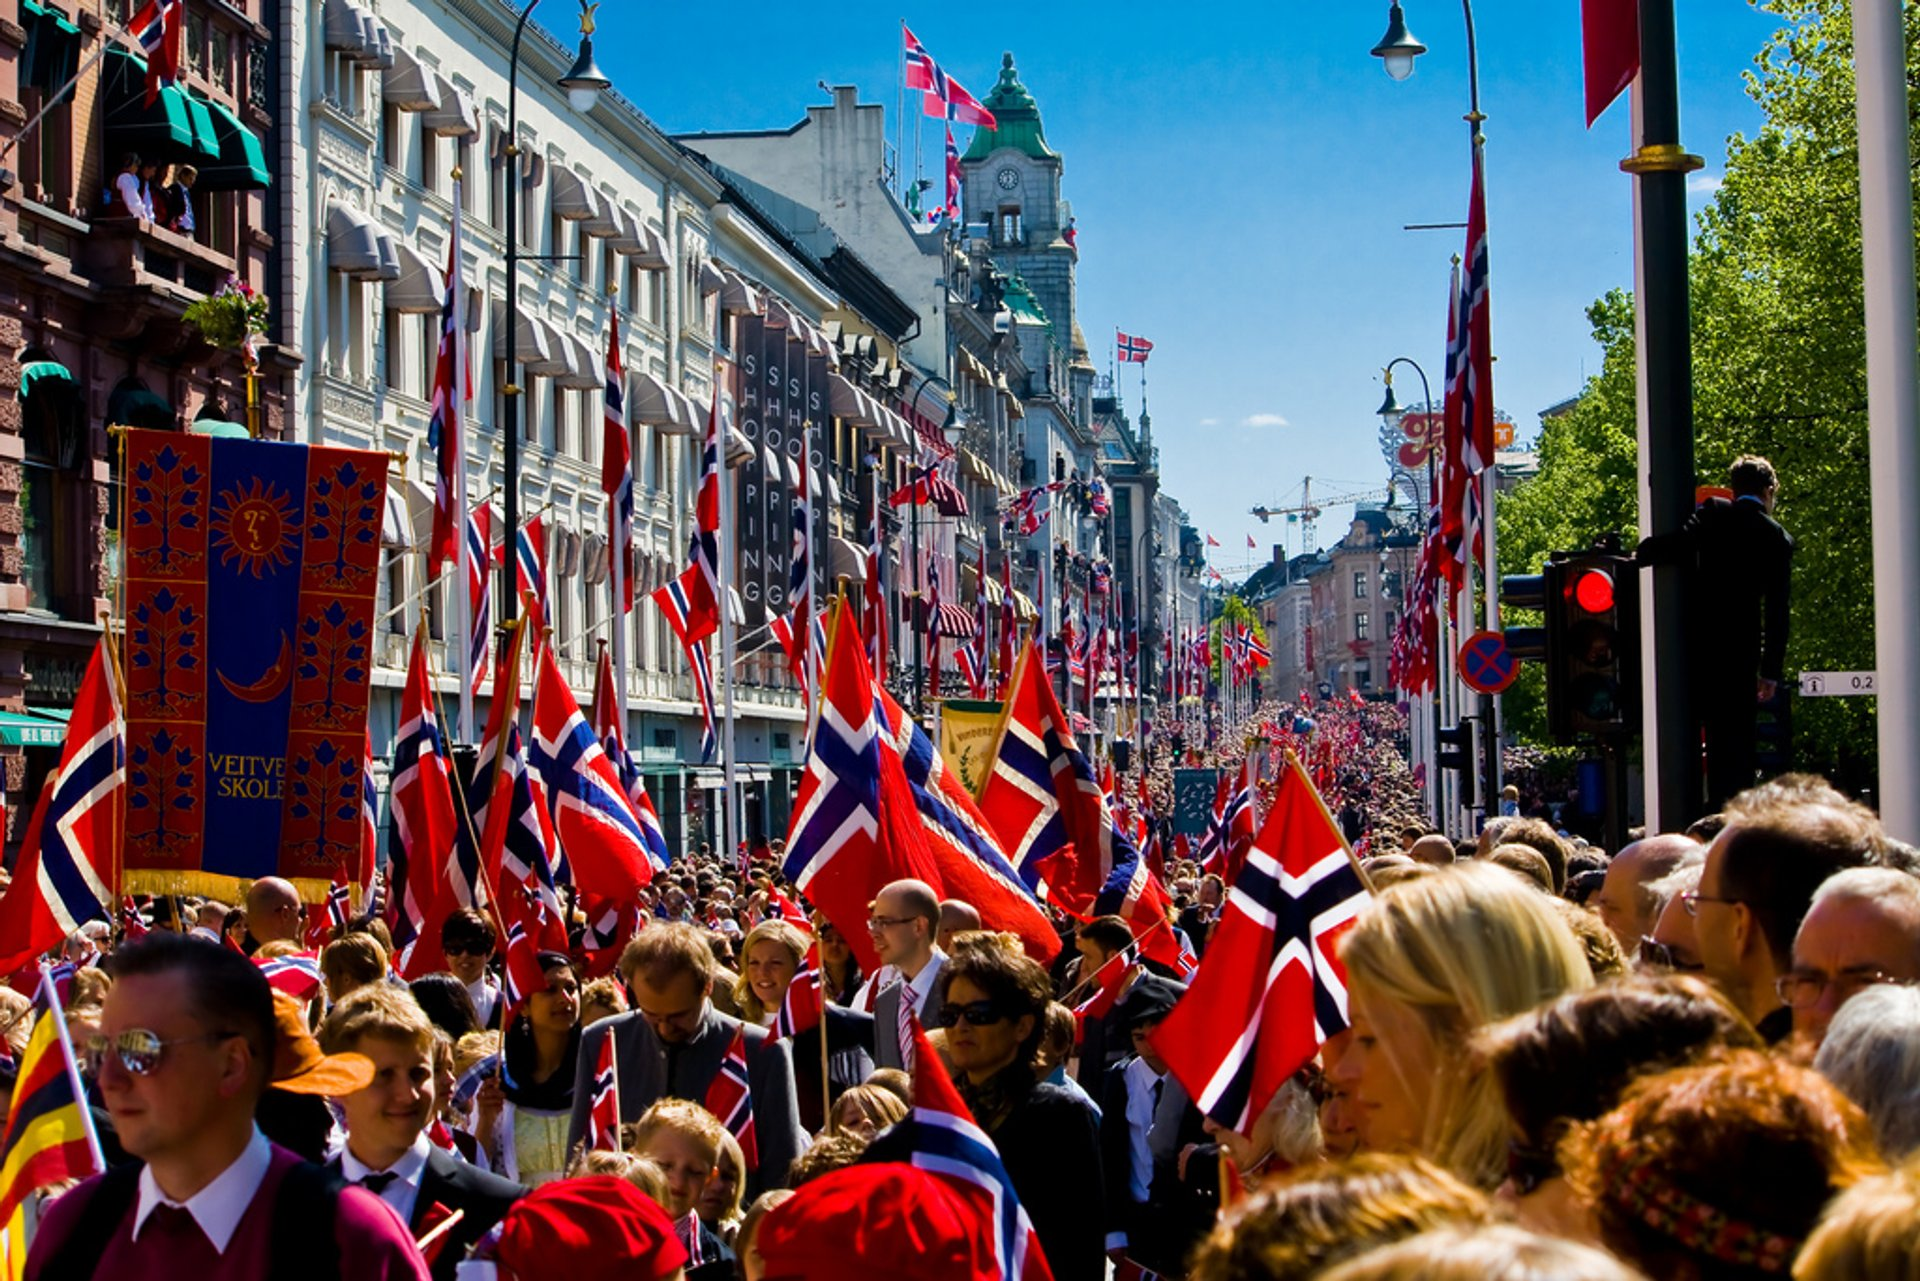 Best time for Norway's National Day in Norway 2019